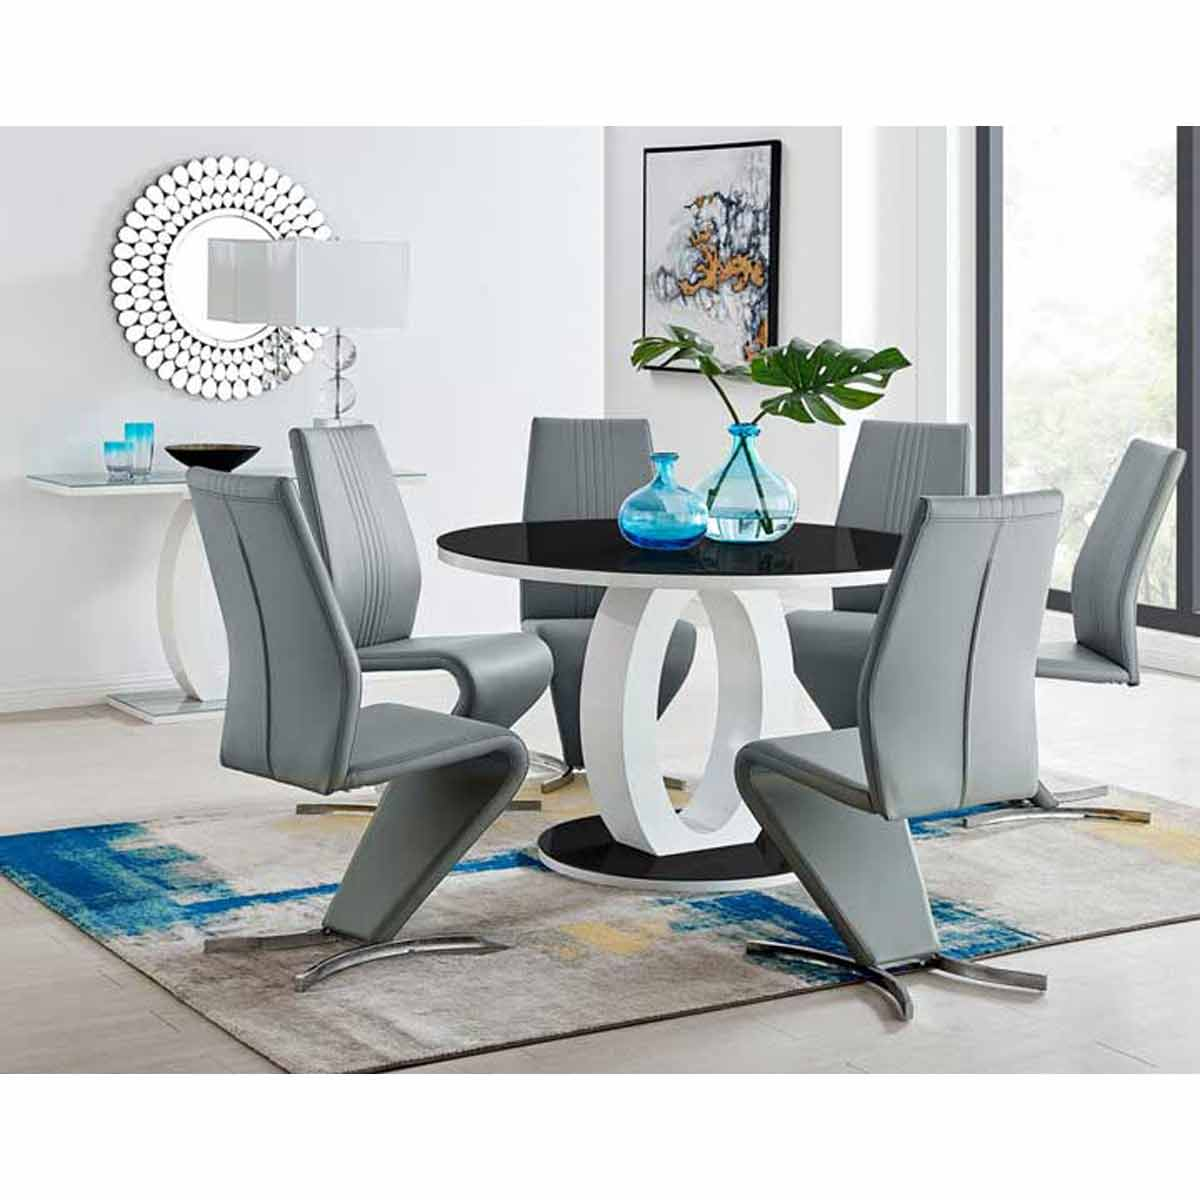 Furniture Box Giovani High Gloss And Glass Large Round Dining Table And 6 Luxury Elephant Grey Willow Dining Chairs Set